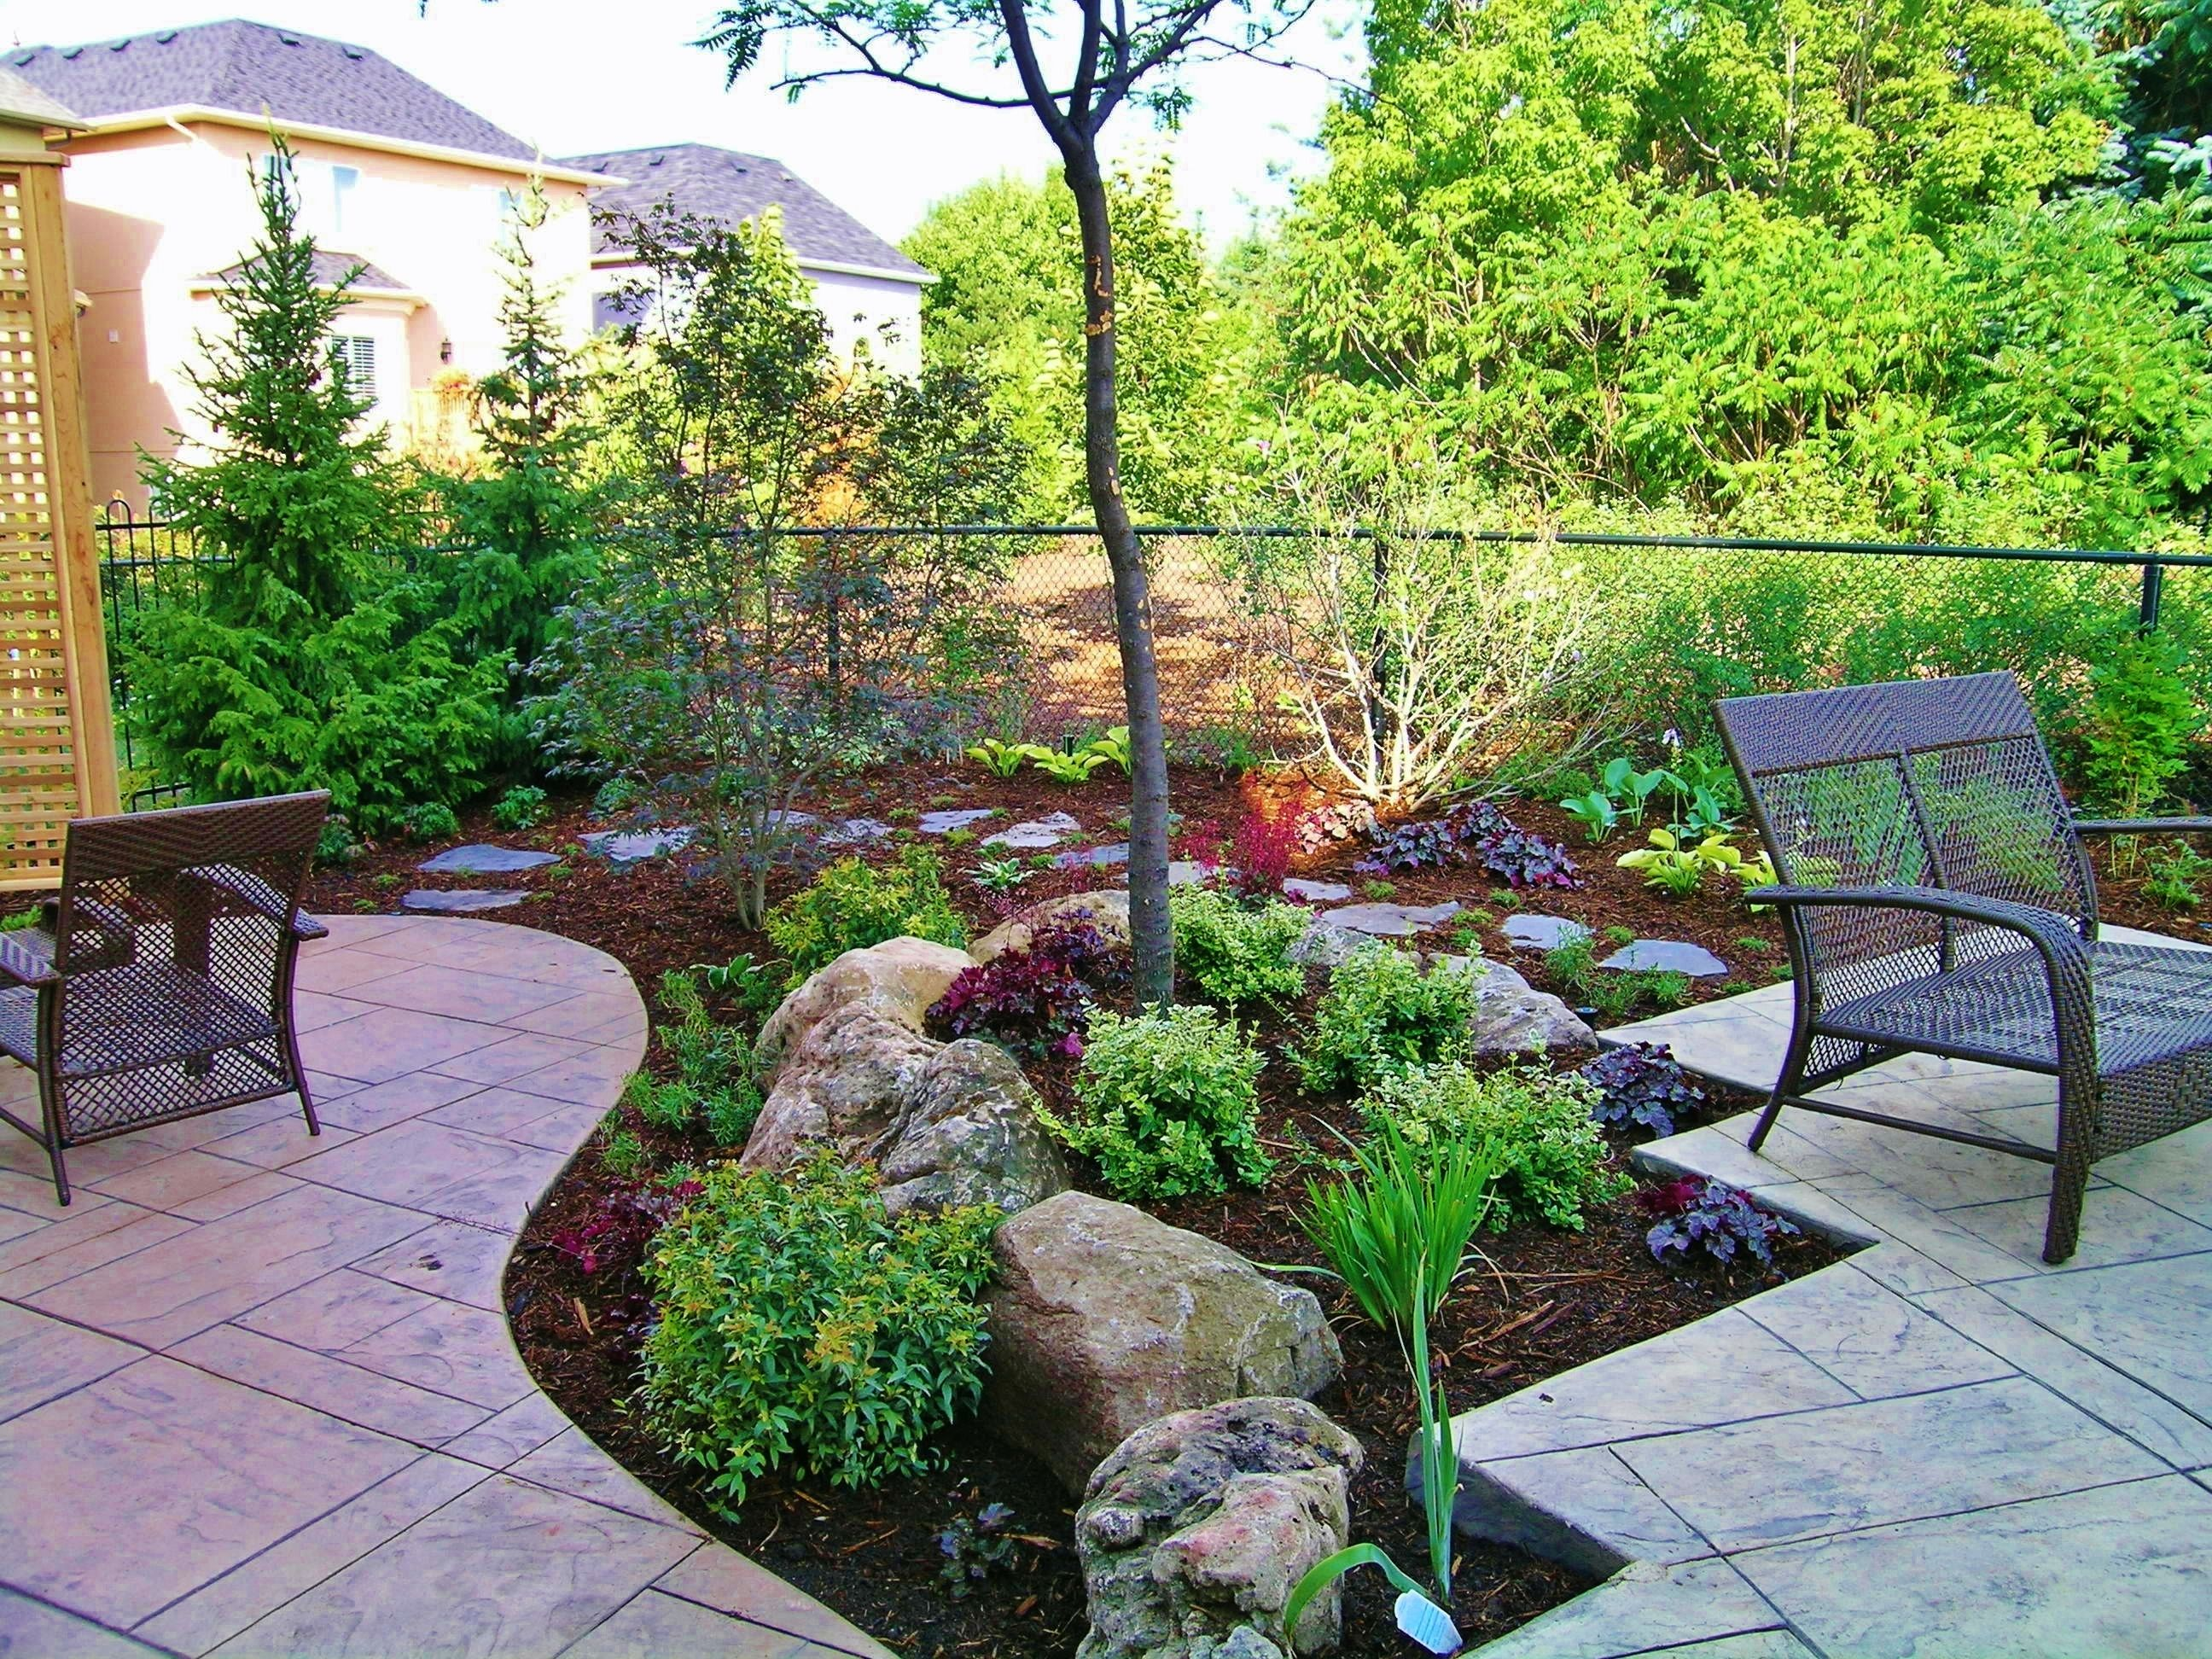 Backyard Without Grass Cheap Landscaping Ideas Backyard Garden Design Small Backyard Gardens